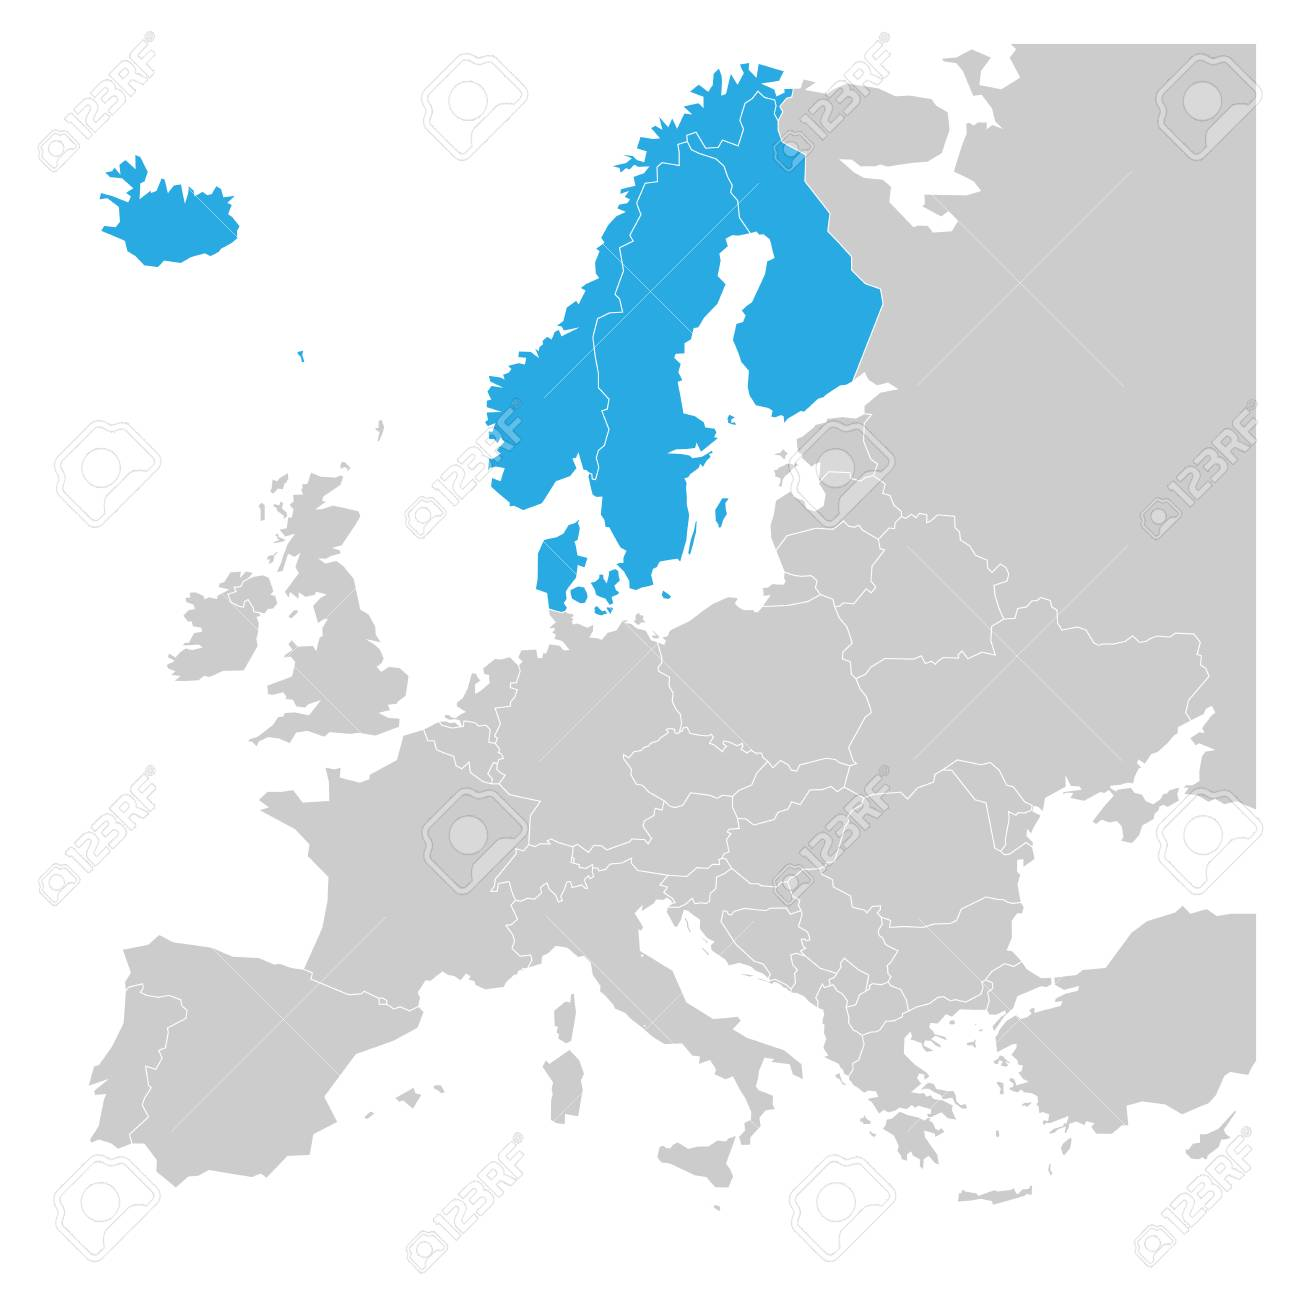 Scandinavian states denmark norway finland sweden and iceland illustration scandinavian states denmark norway finland sweden and iceland blue highlighted in the political map of europe vector illustration gumiabroncs Choice Image